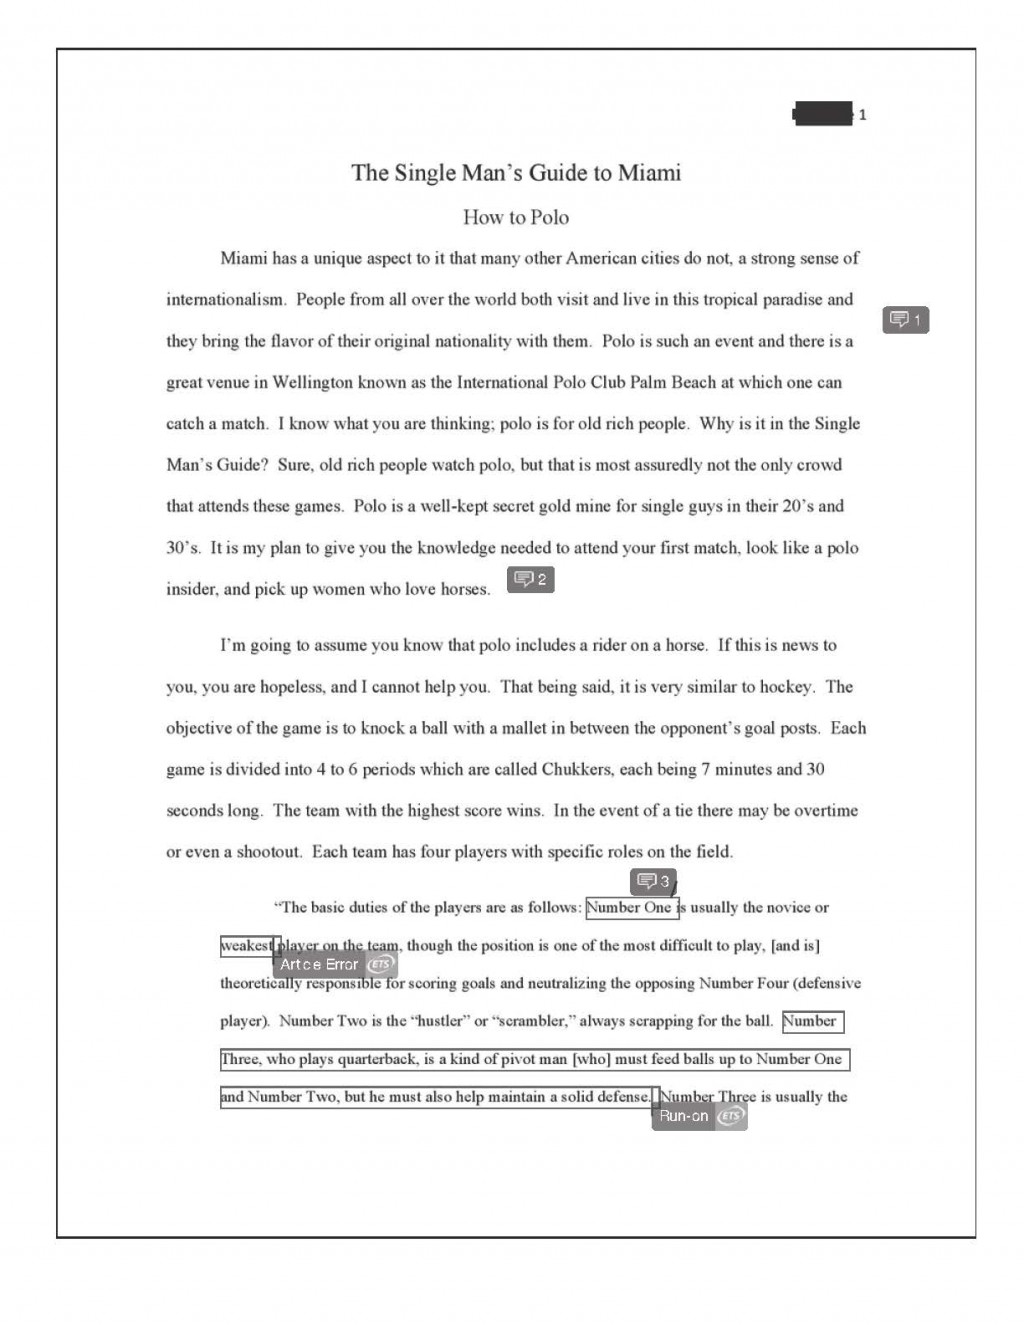 028 Essay Example Informative Final How To Polo Redacted Page 2 Unforgettable Outline 5th Grade Examples Large